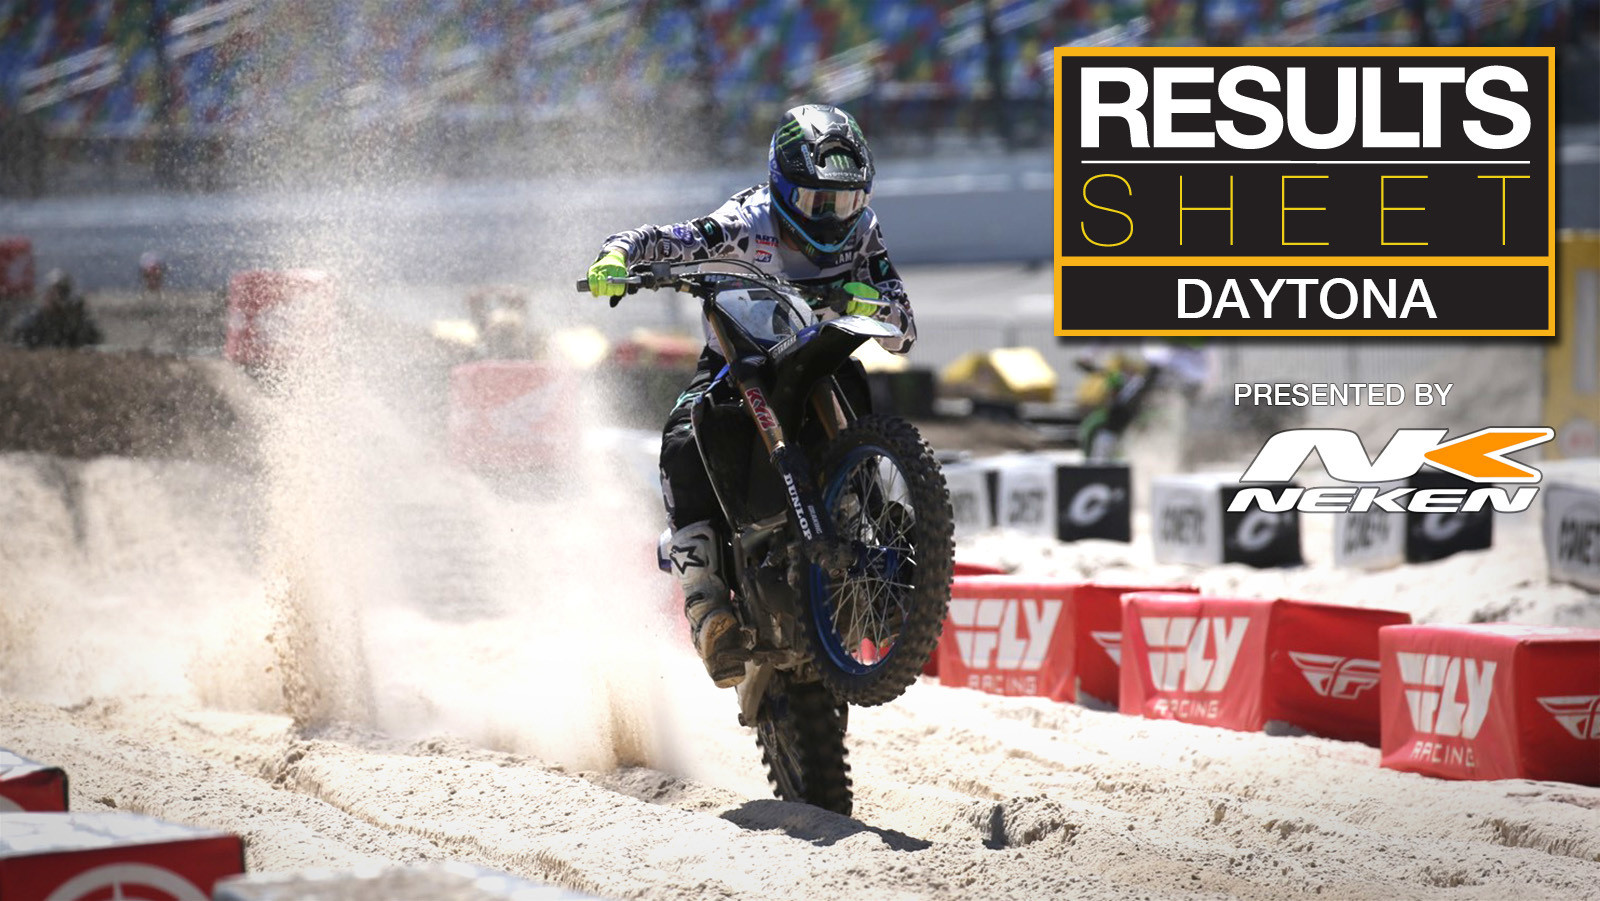 Results Sheet: 2020 Daytona Supercross